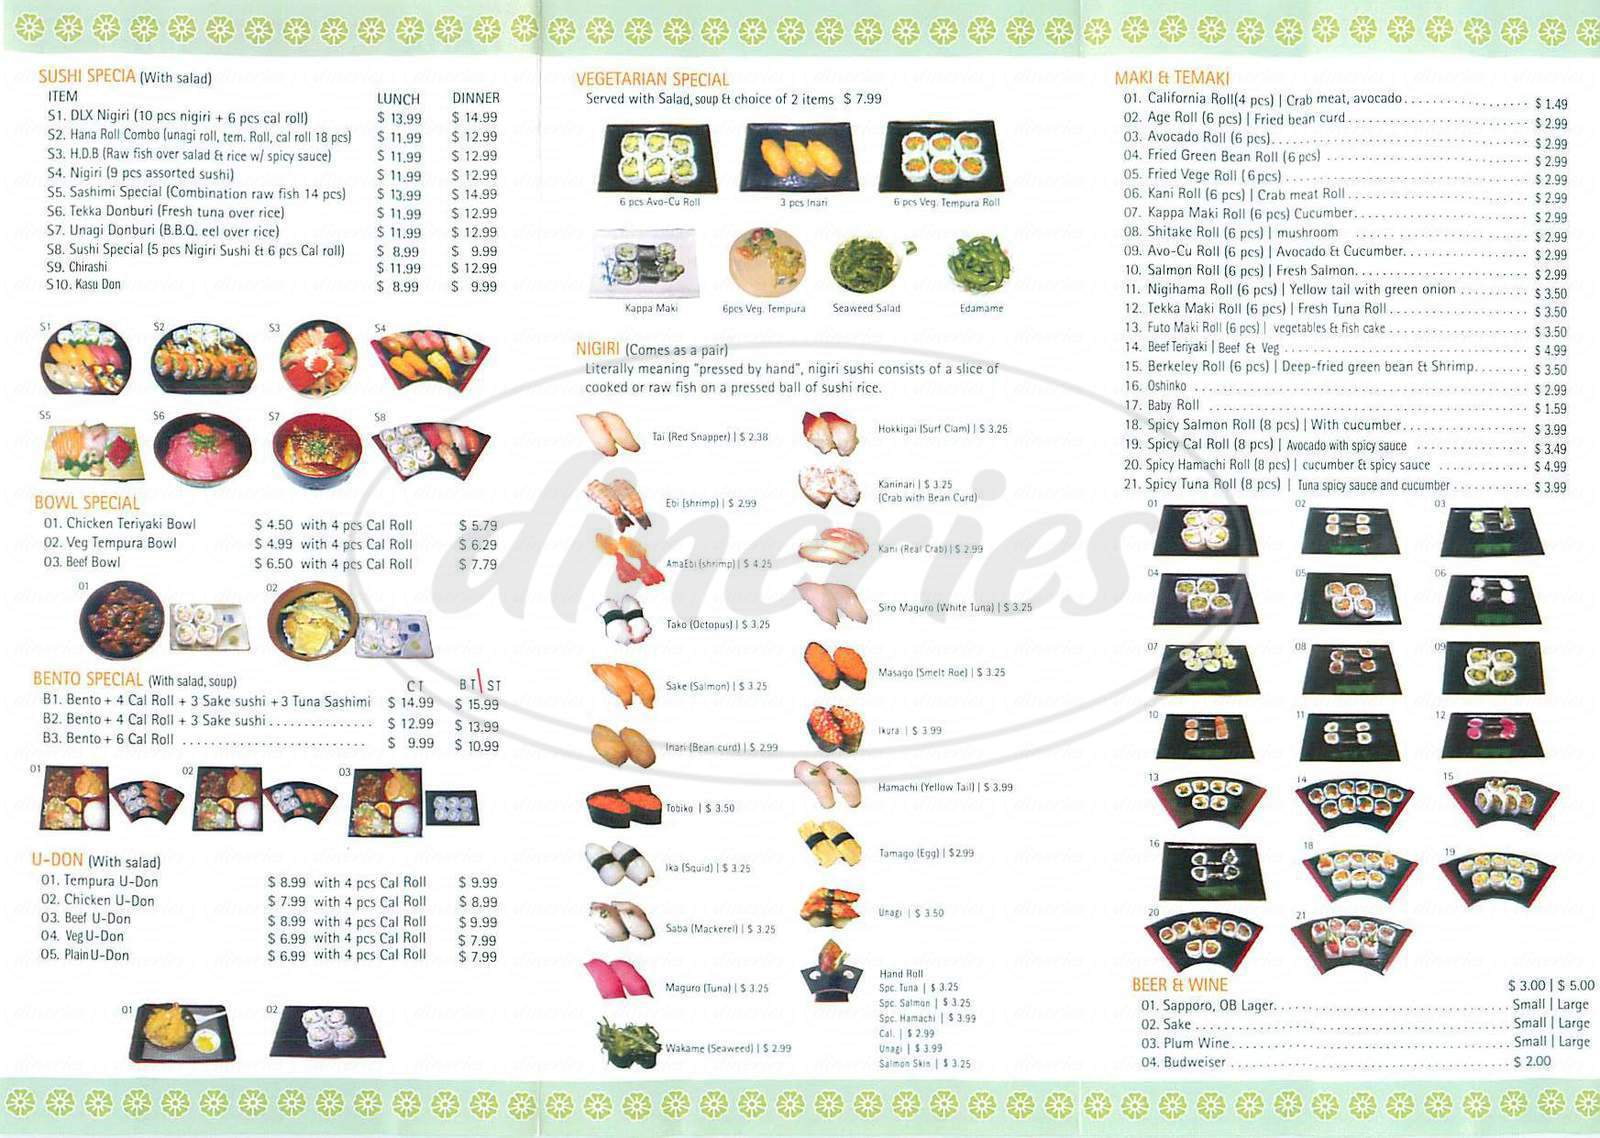 menu for Hana Maki Sushi